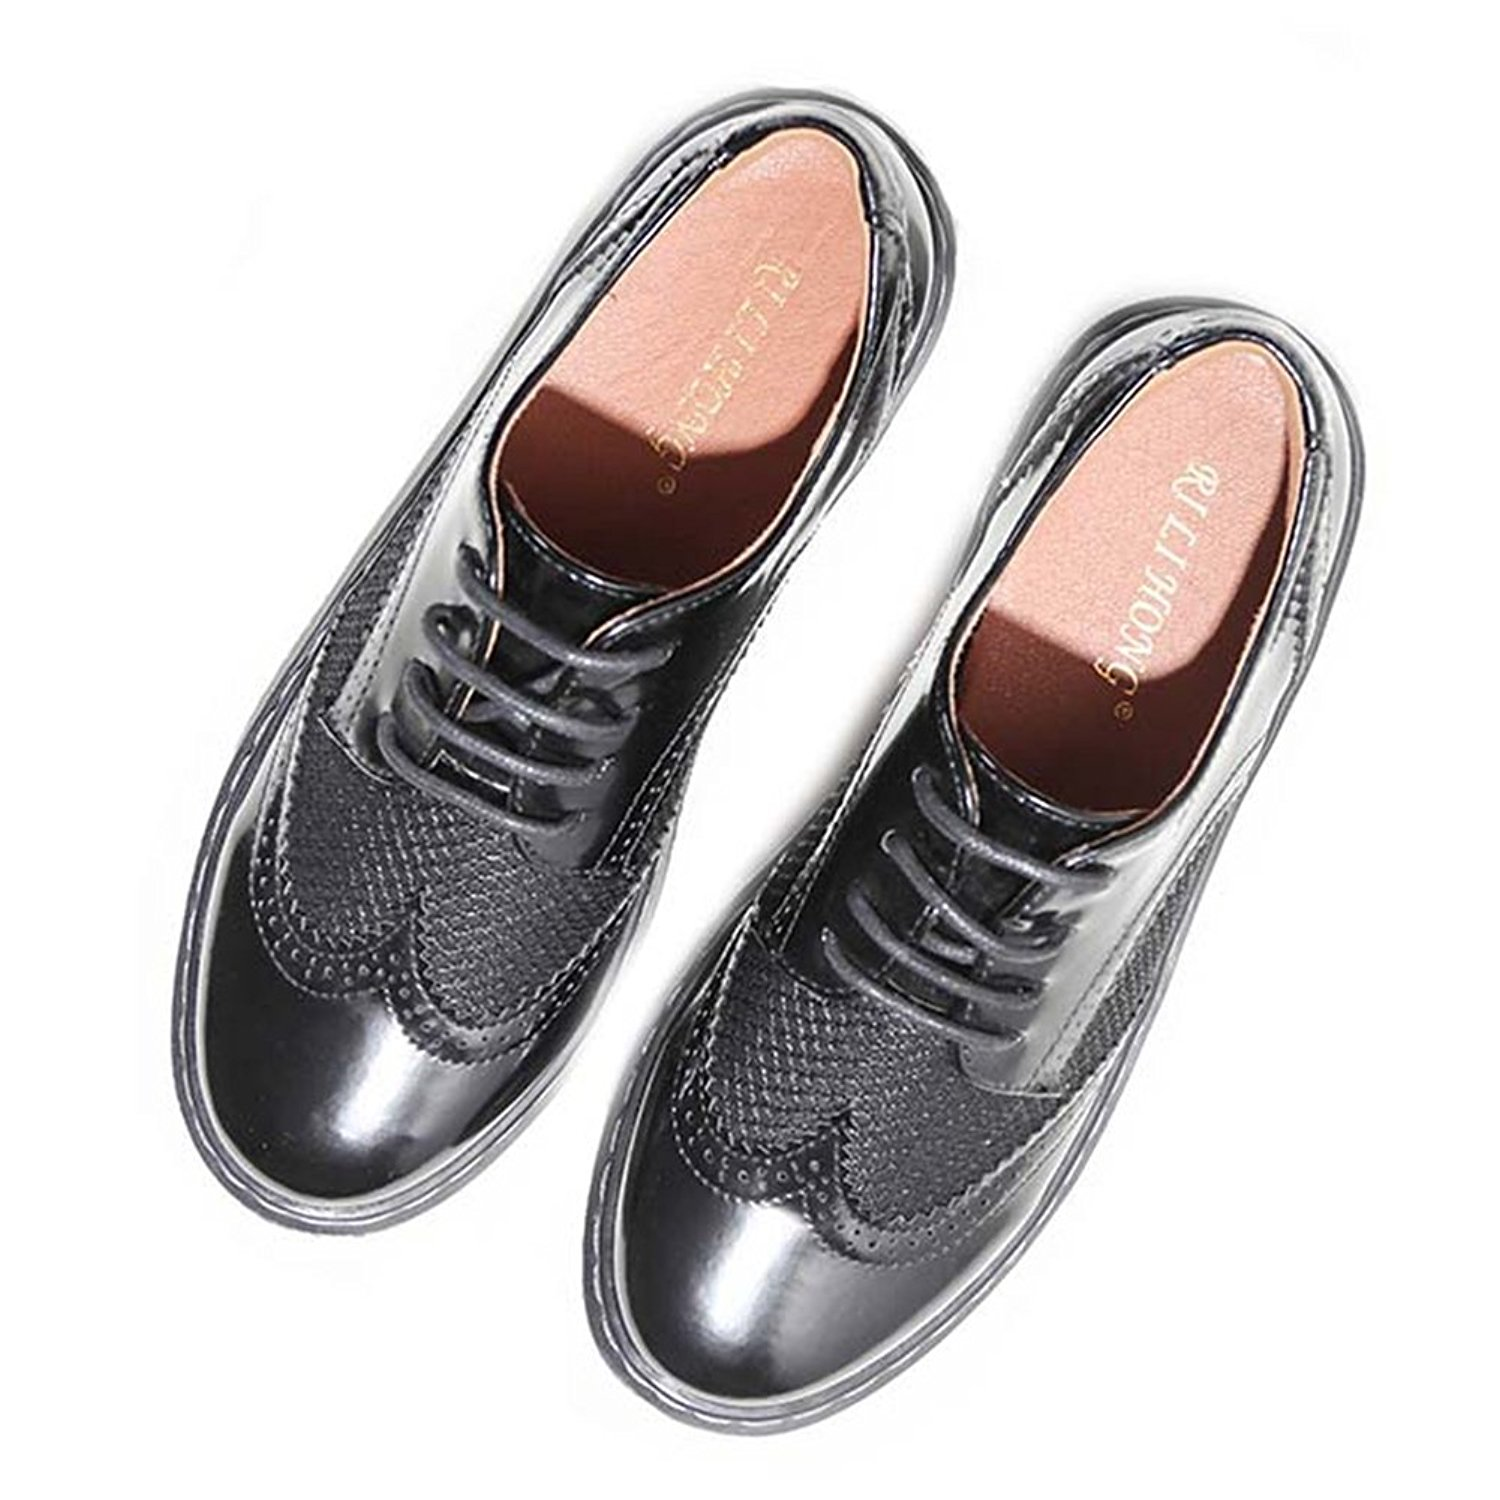 567b392bd48 JINANLIPIN Women s Lace-up Brogues Oxfords Wingtip Vintage Low Heel Dress  Casual Shoes